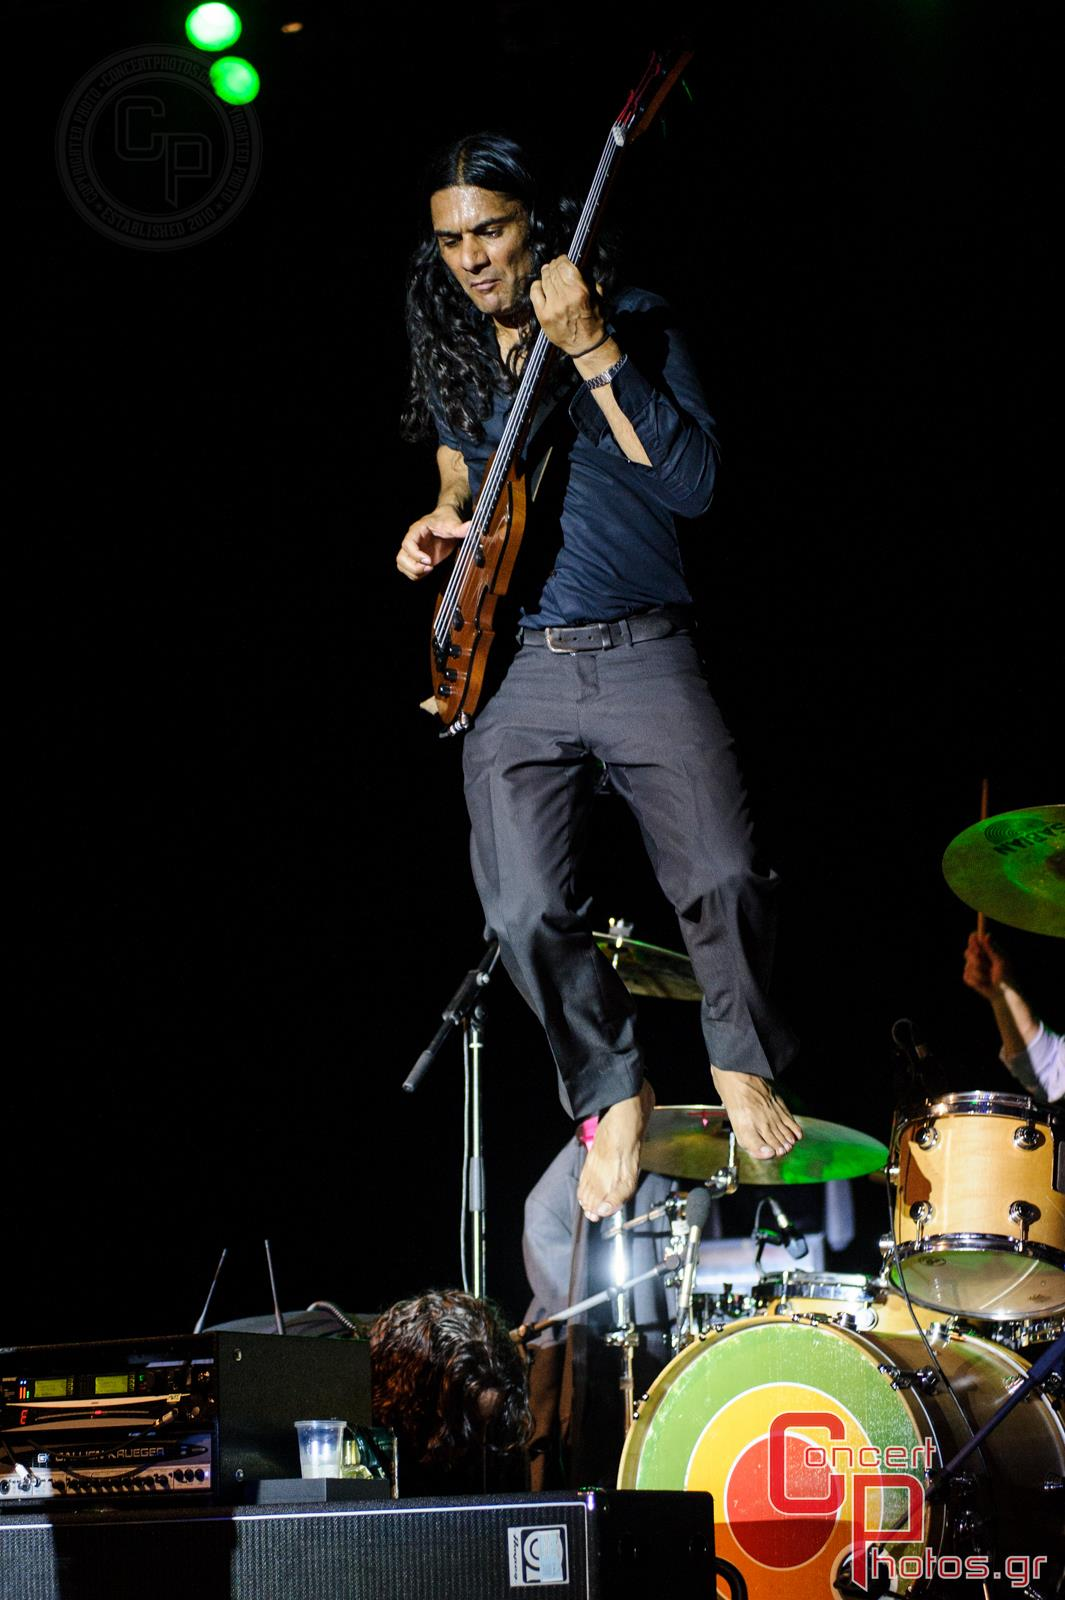 Thievery Corporation Imam Baildi Boogie Belgique Penny And The Swingin' Cats-Thievery Corporation Imam Baildi Boogie Belgique Penny And The Swingin' Cats photographer:  - concertphotos_20140617_23_30_34-4